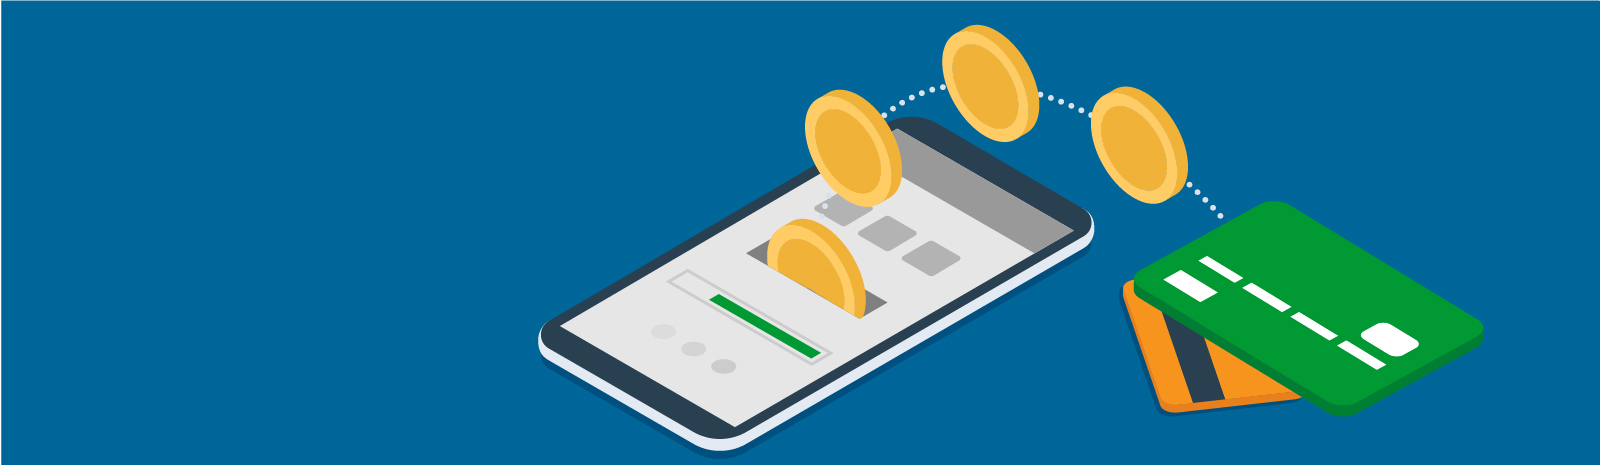 credit card and coins going into mobile phone illustration